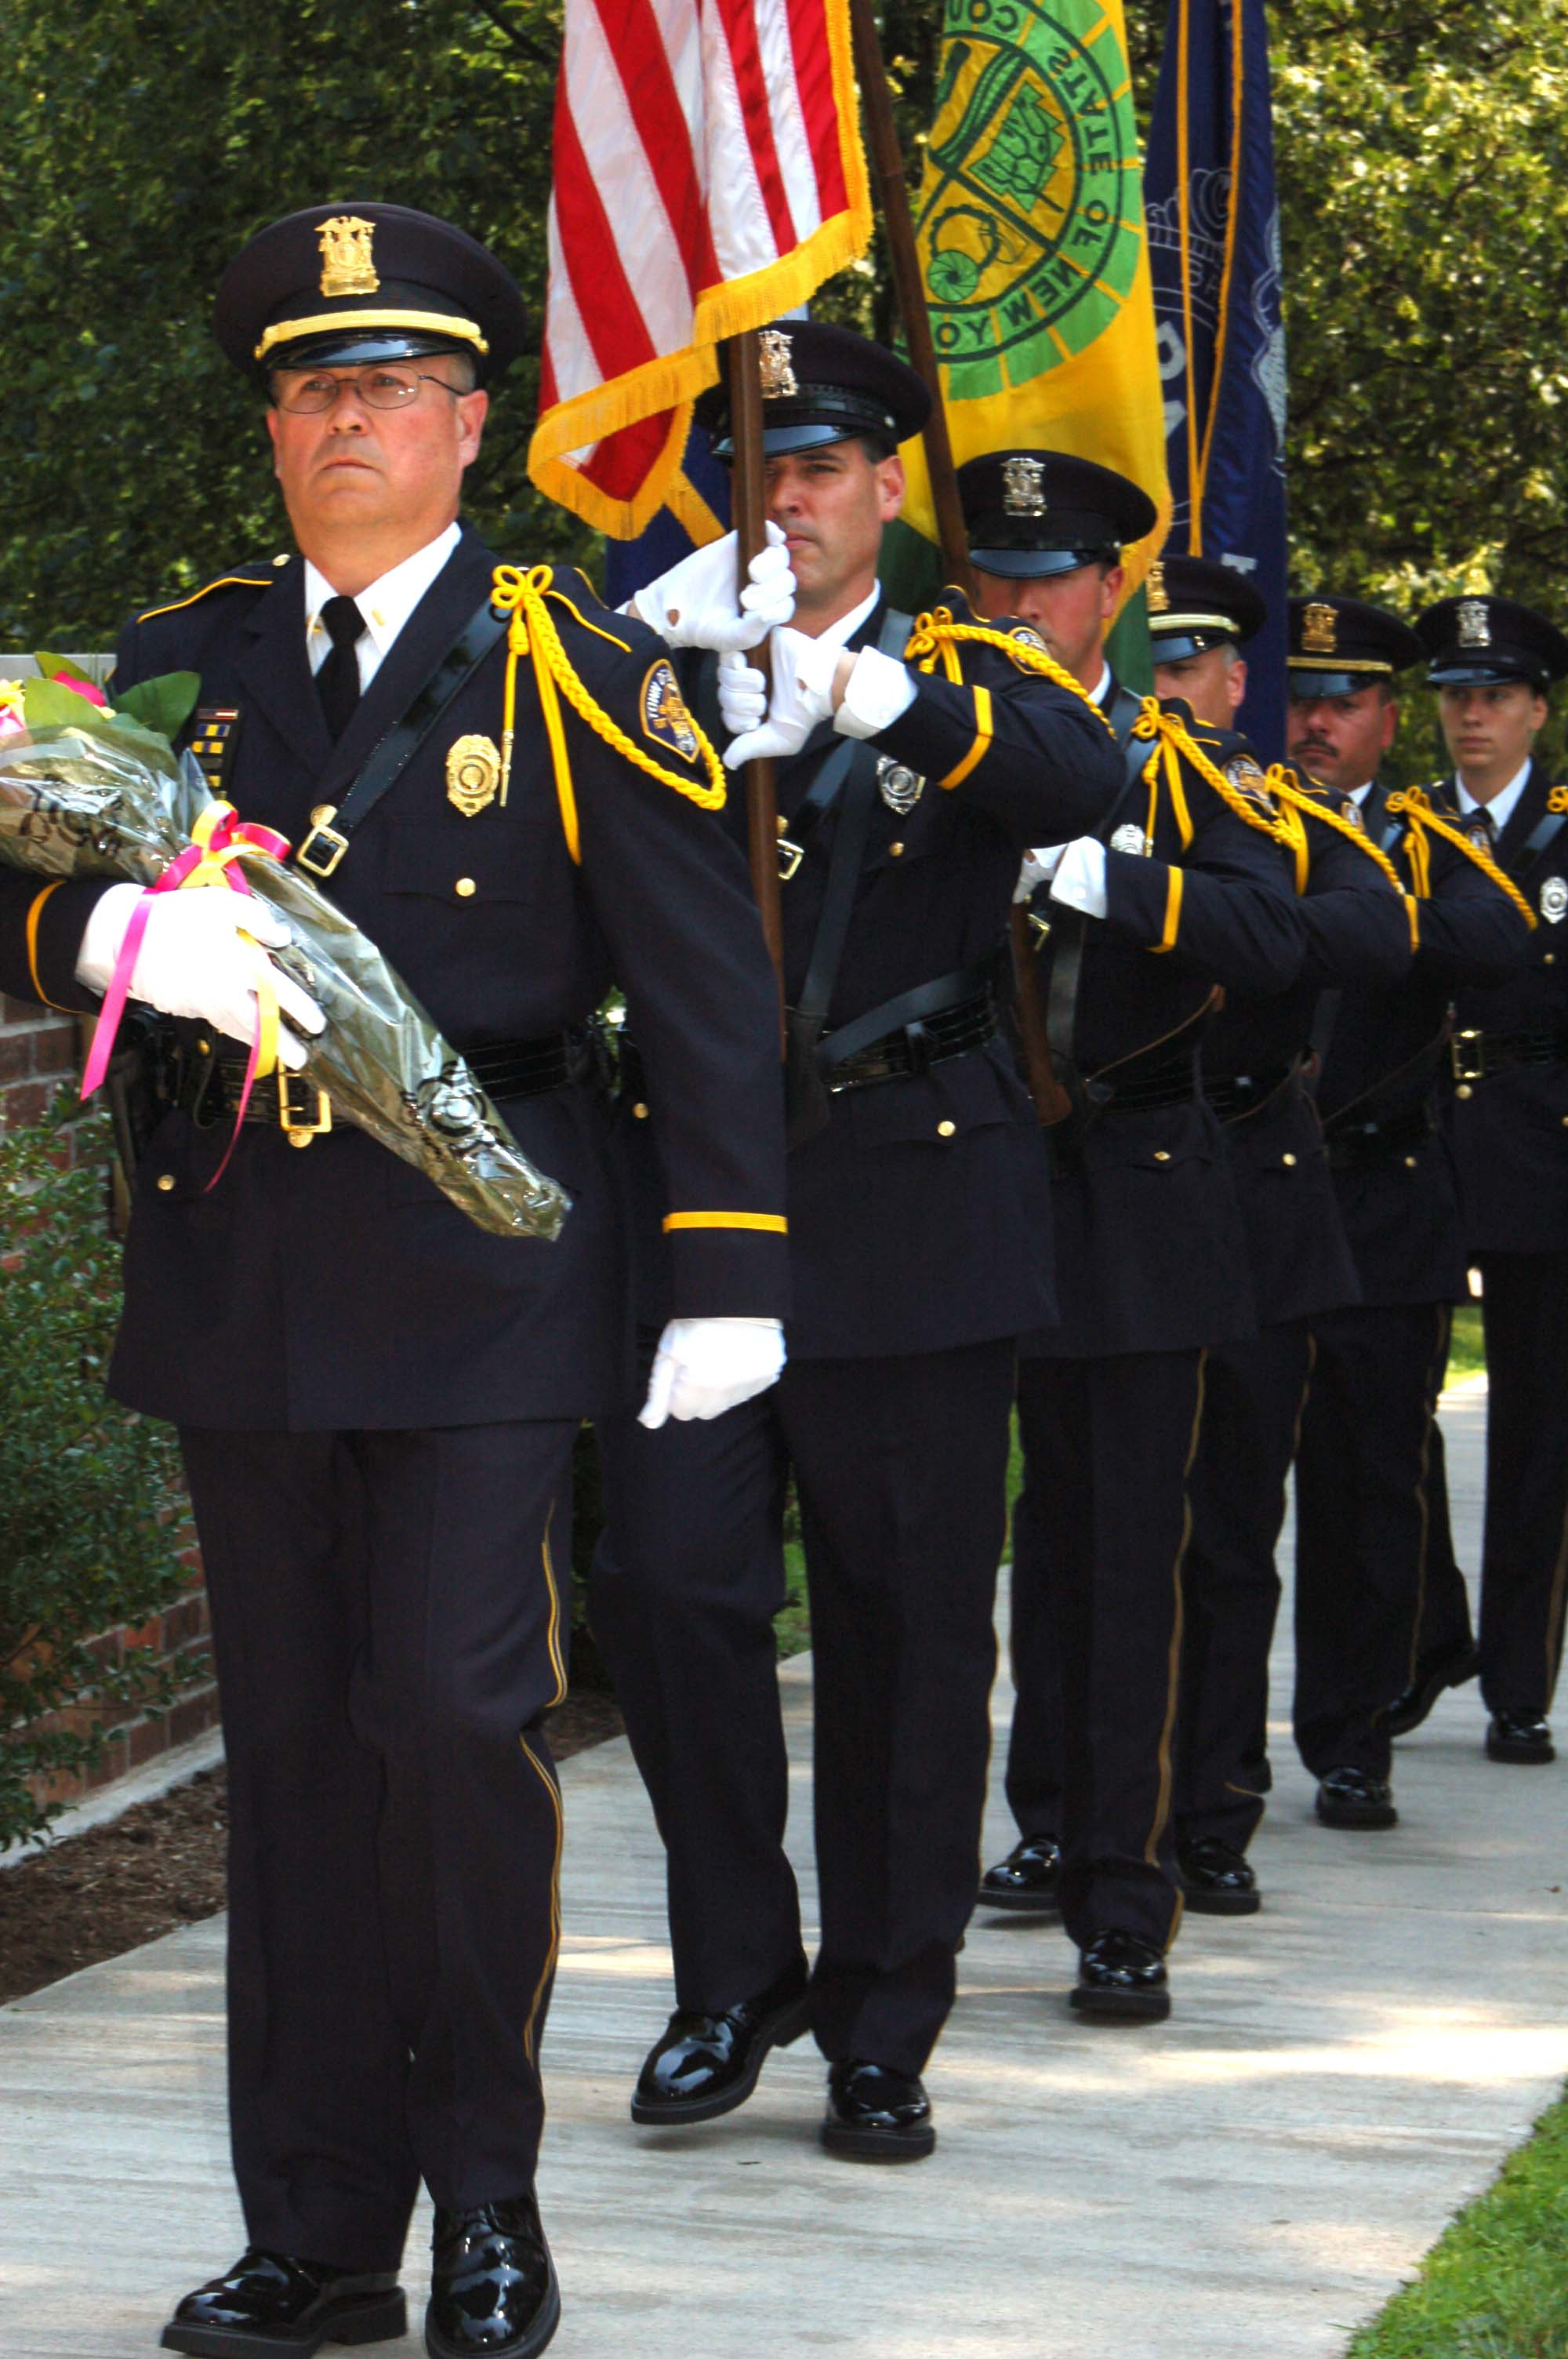 Honor Guard 2010.jpg